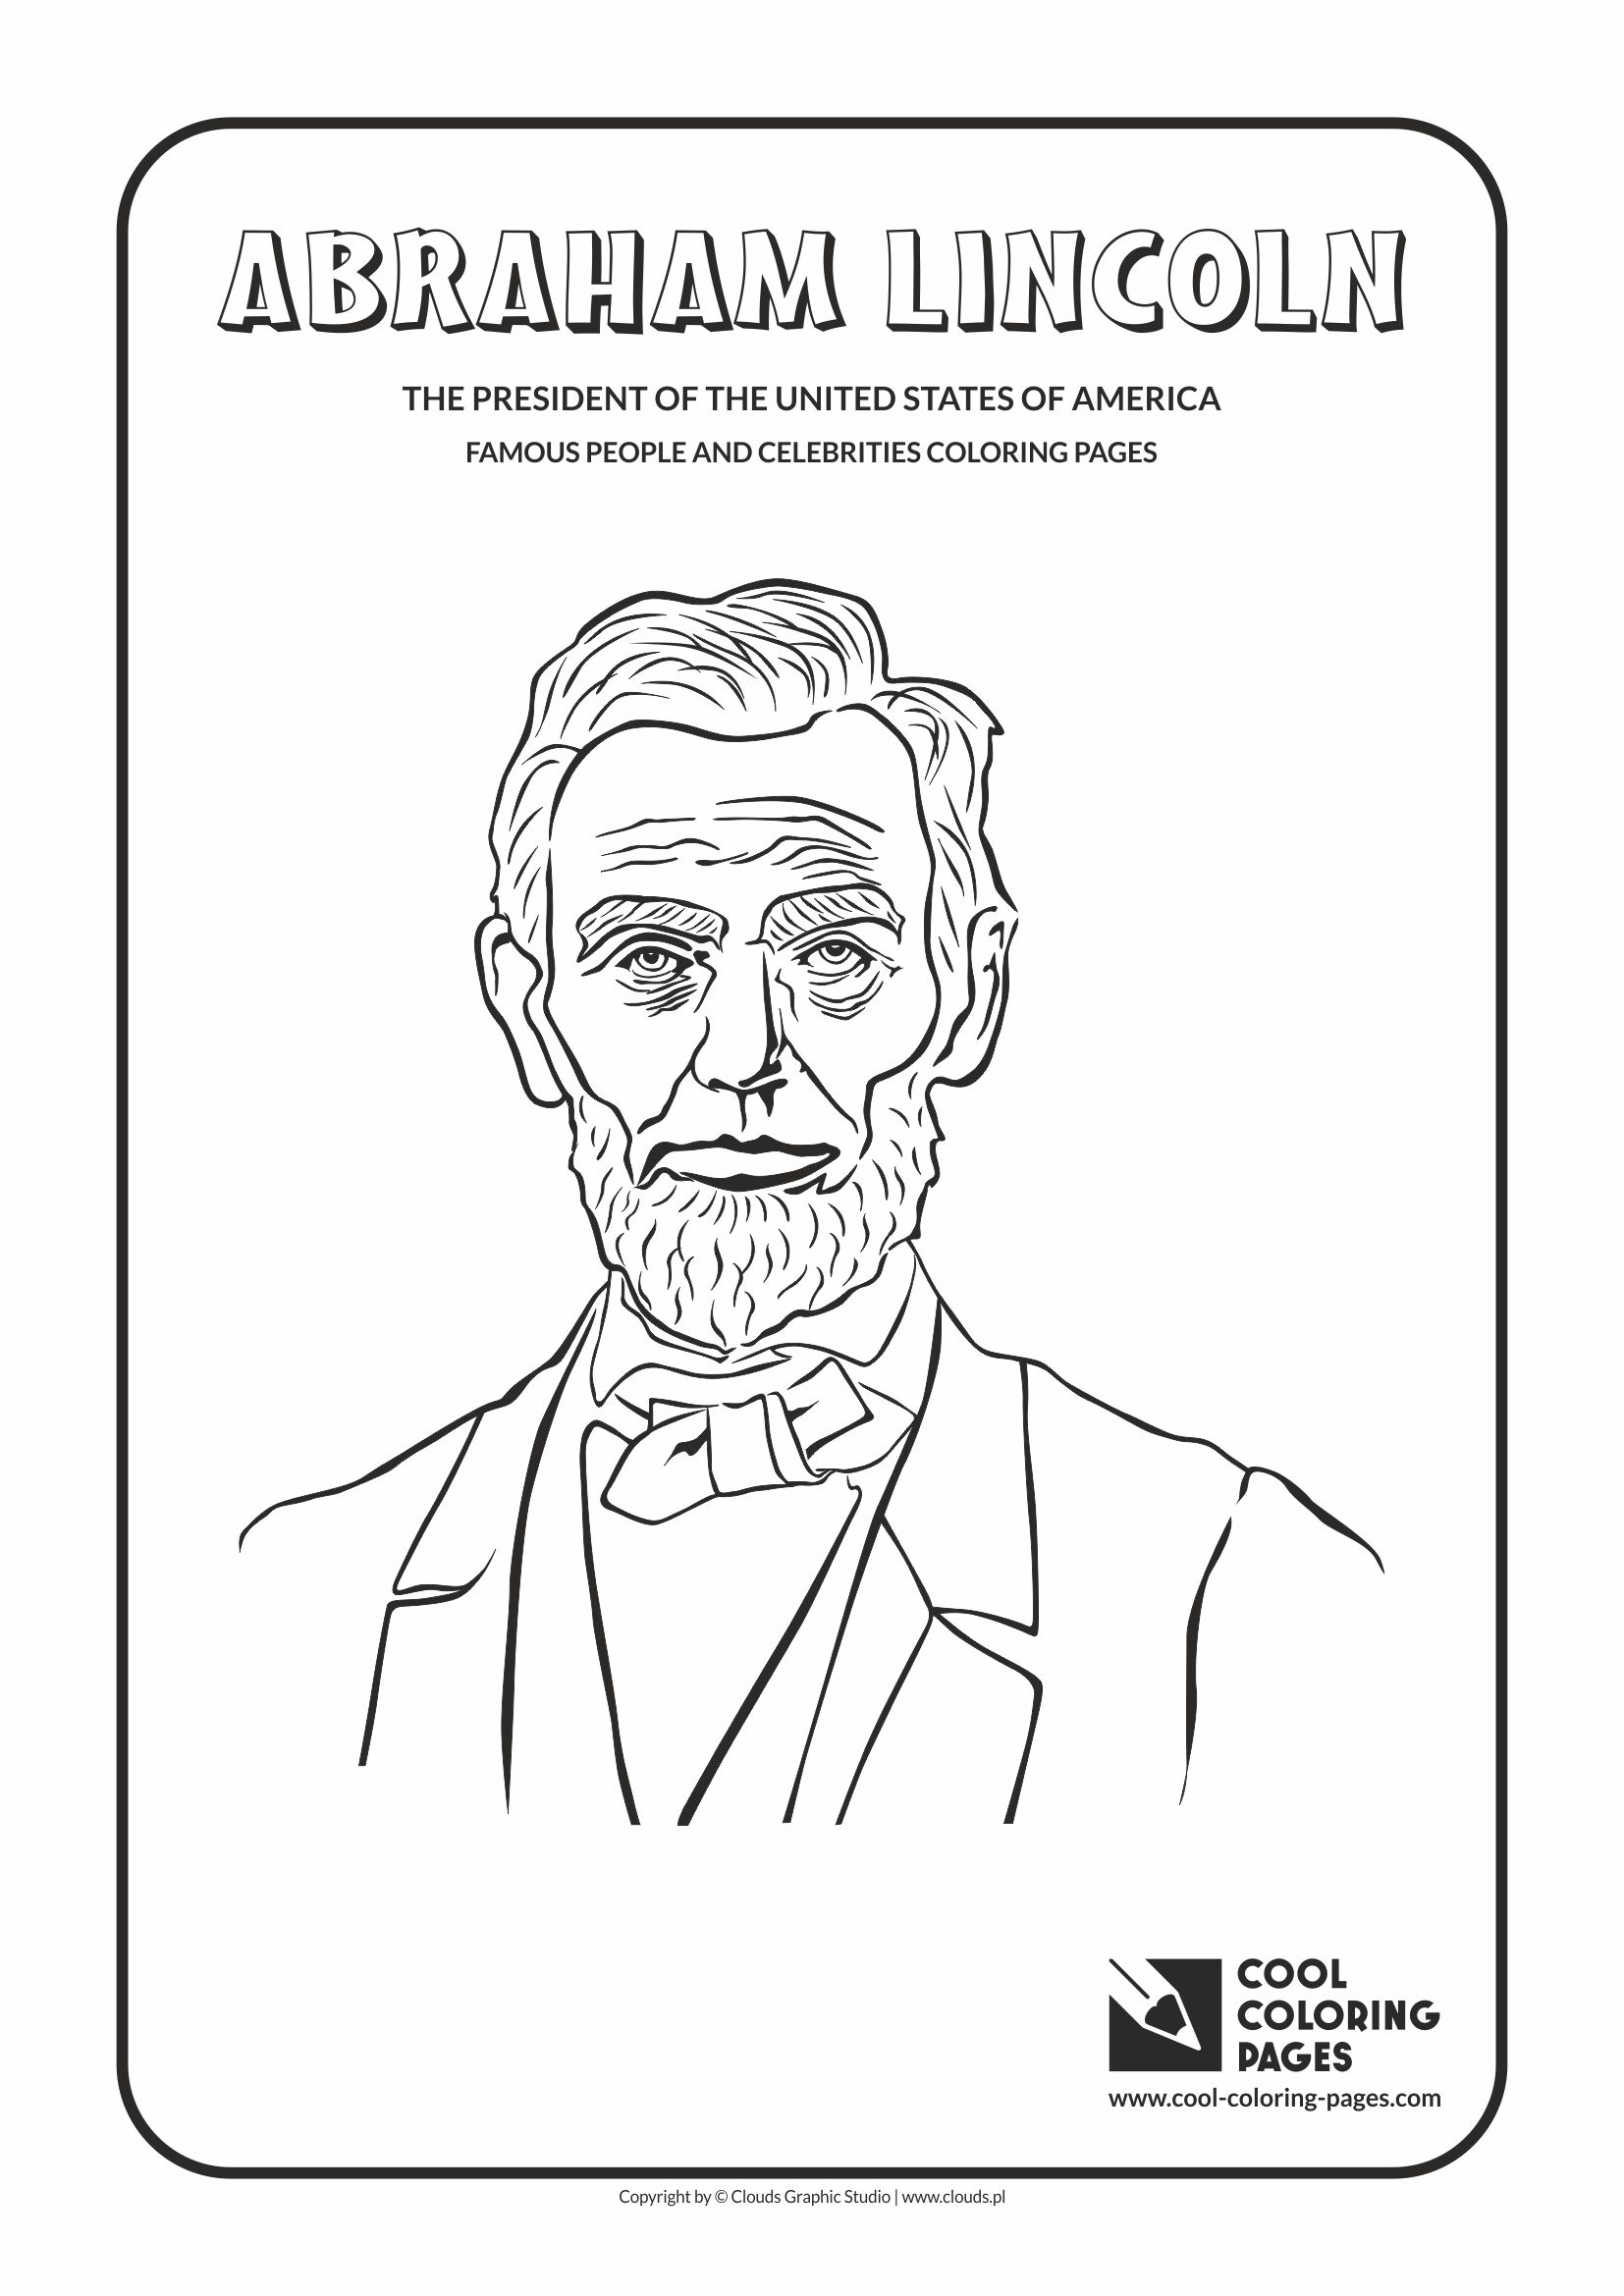 coloring pages abraham lincoln - cool coloring pages abraham lincoln coloring page cool coloring pages free educational